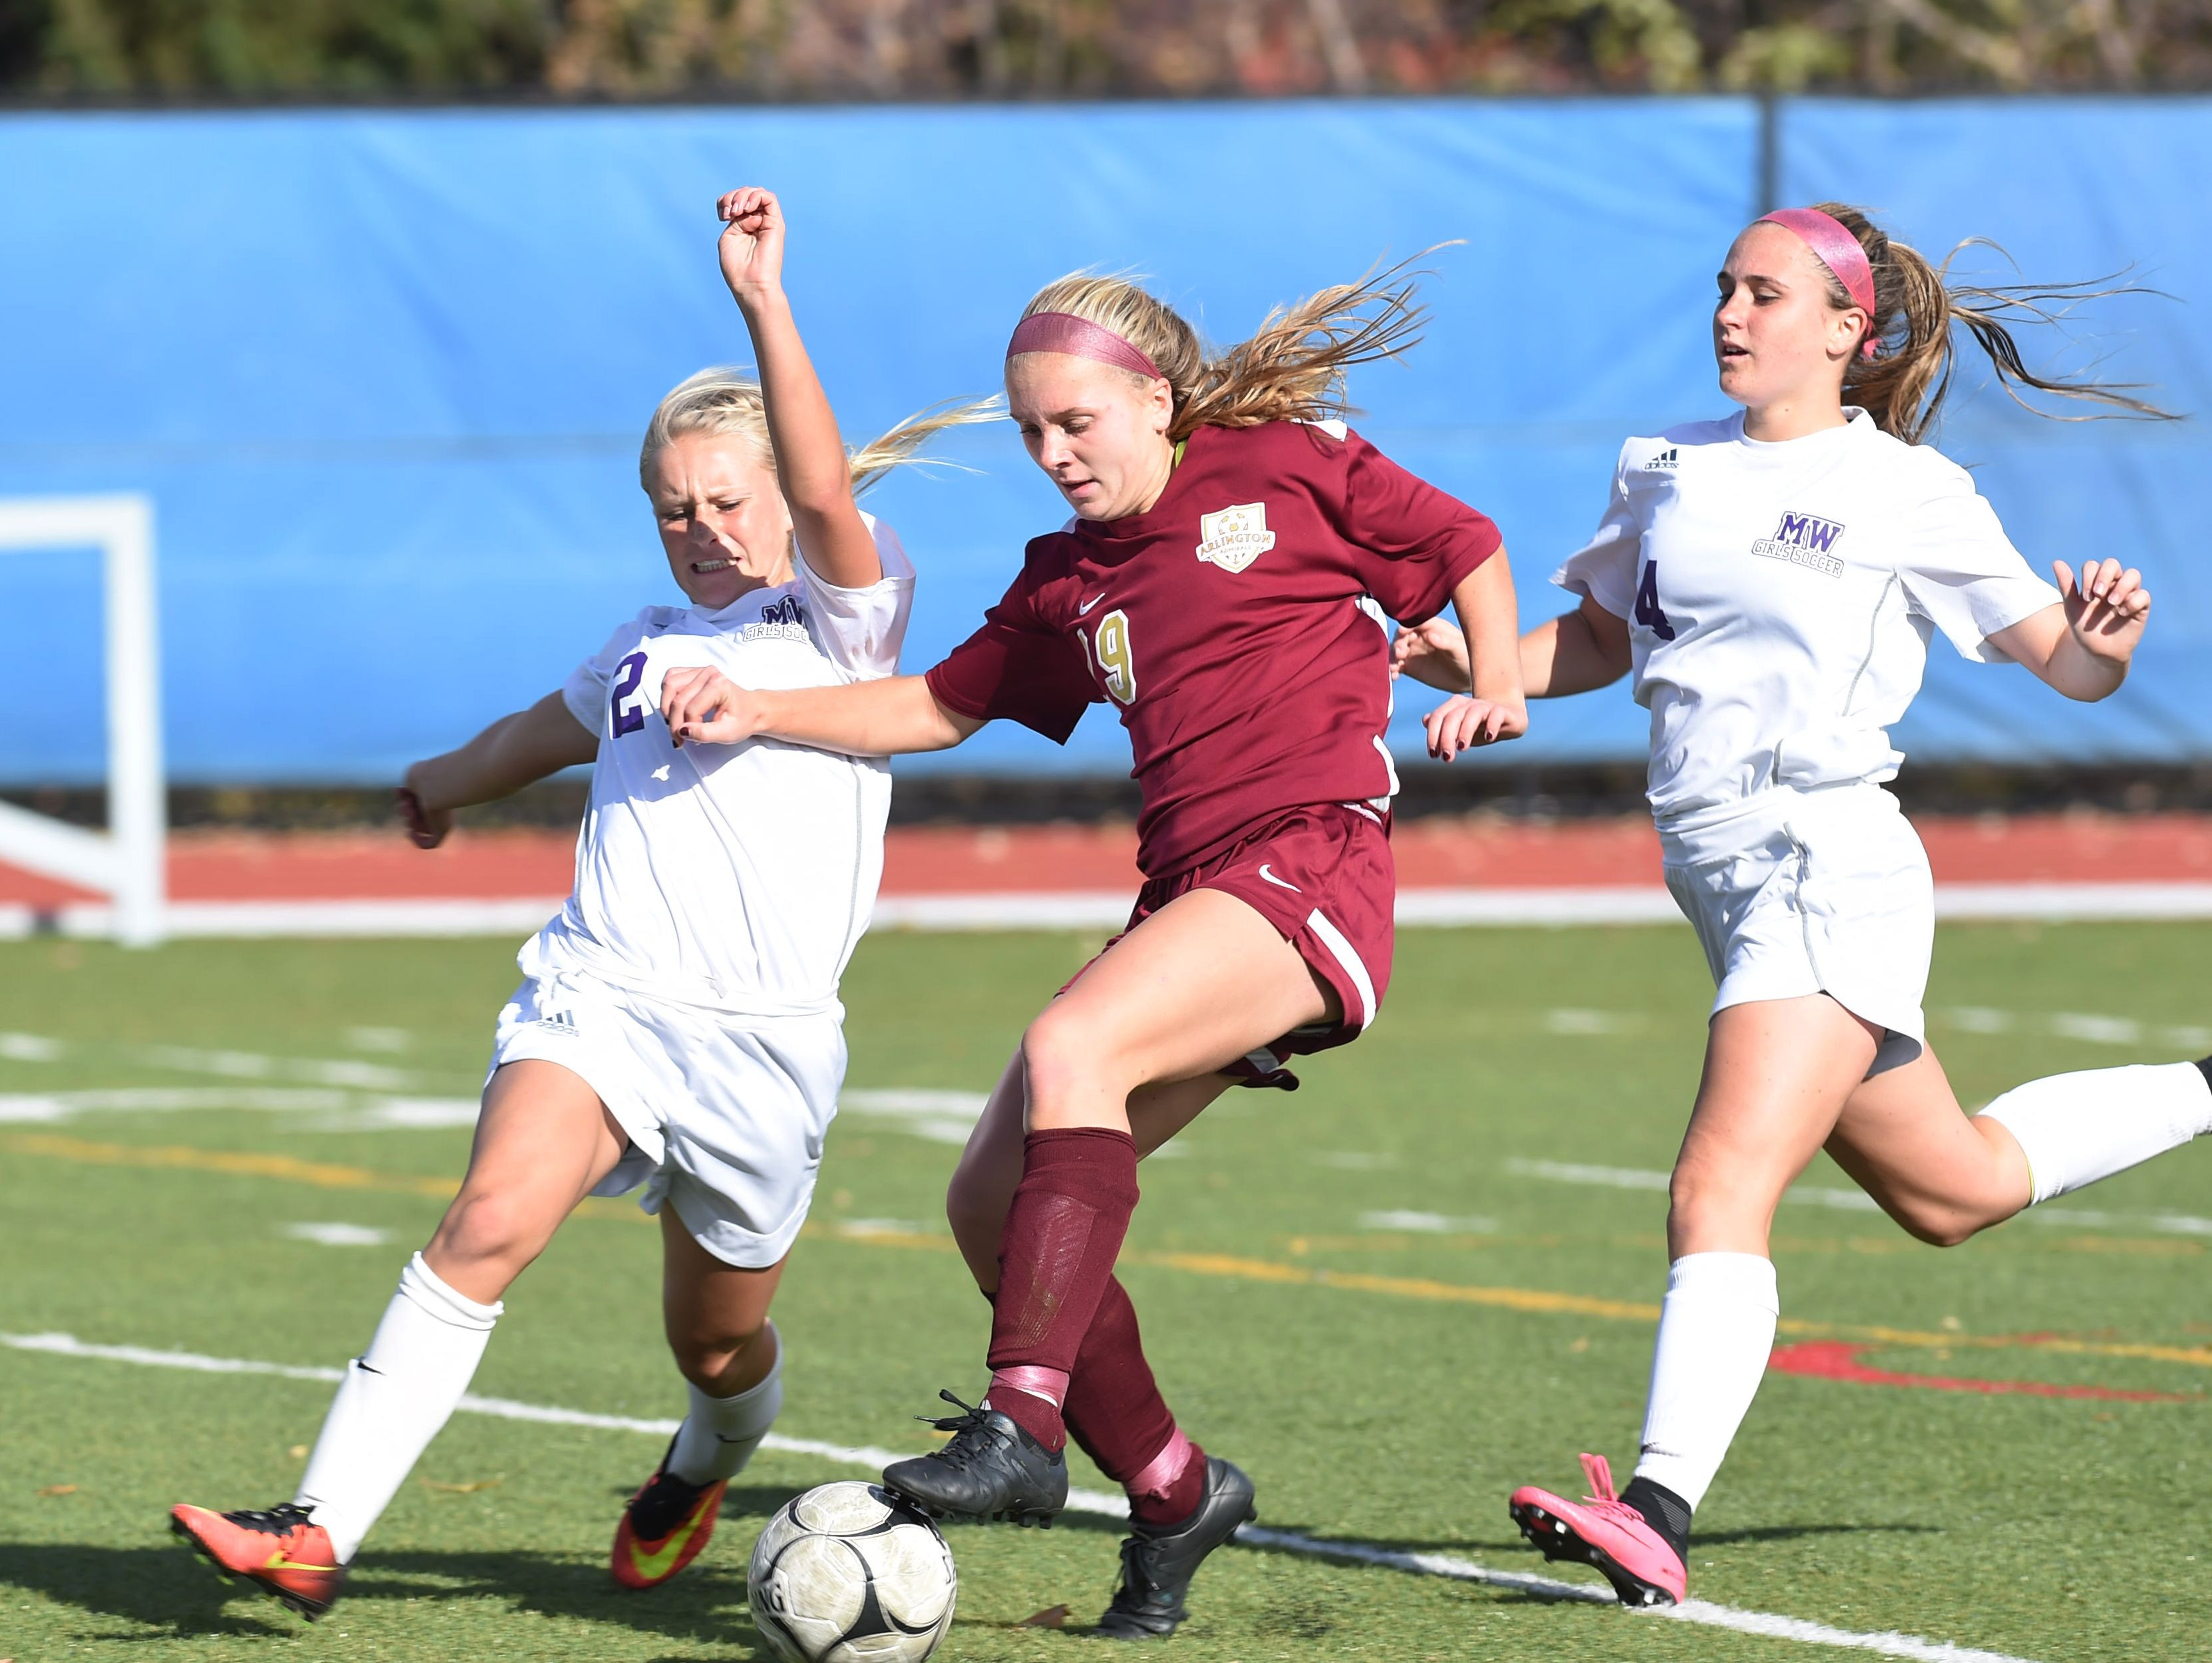 Arlington's Molly Feighan, center, tries to keep the ball away from Monroe-Woodbury's Kayla MacKenzie, left, during Saturday's Class AA regional final.